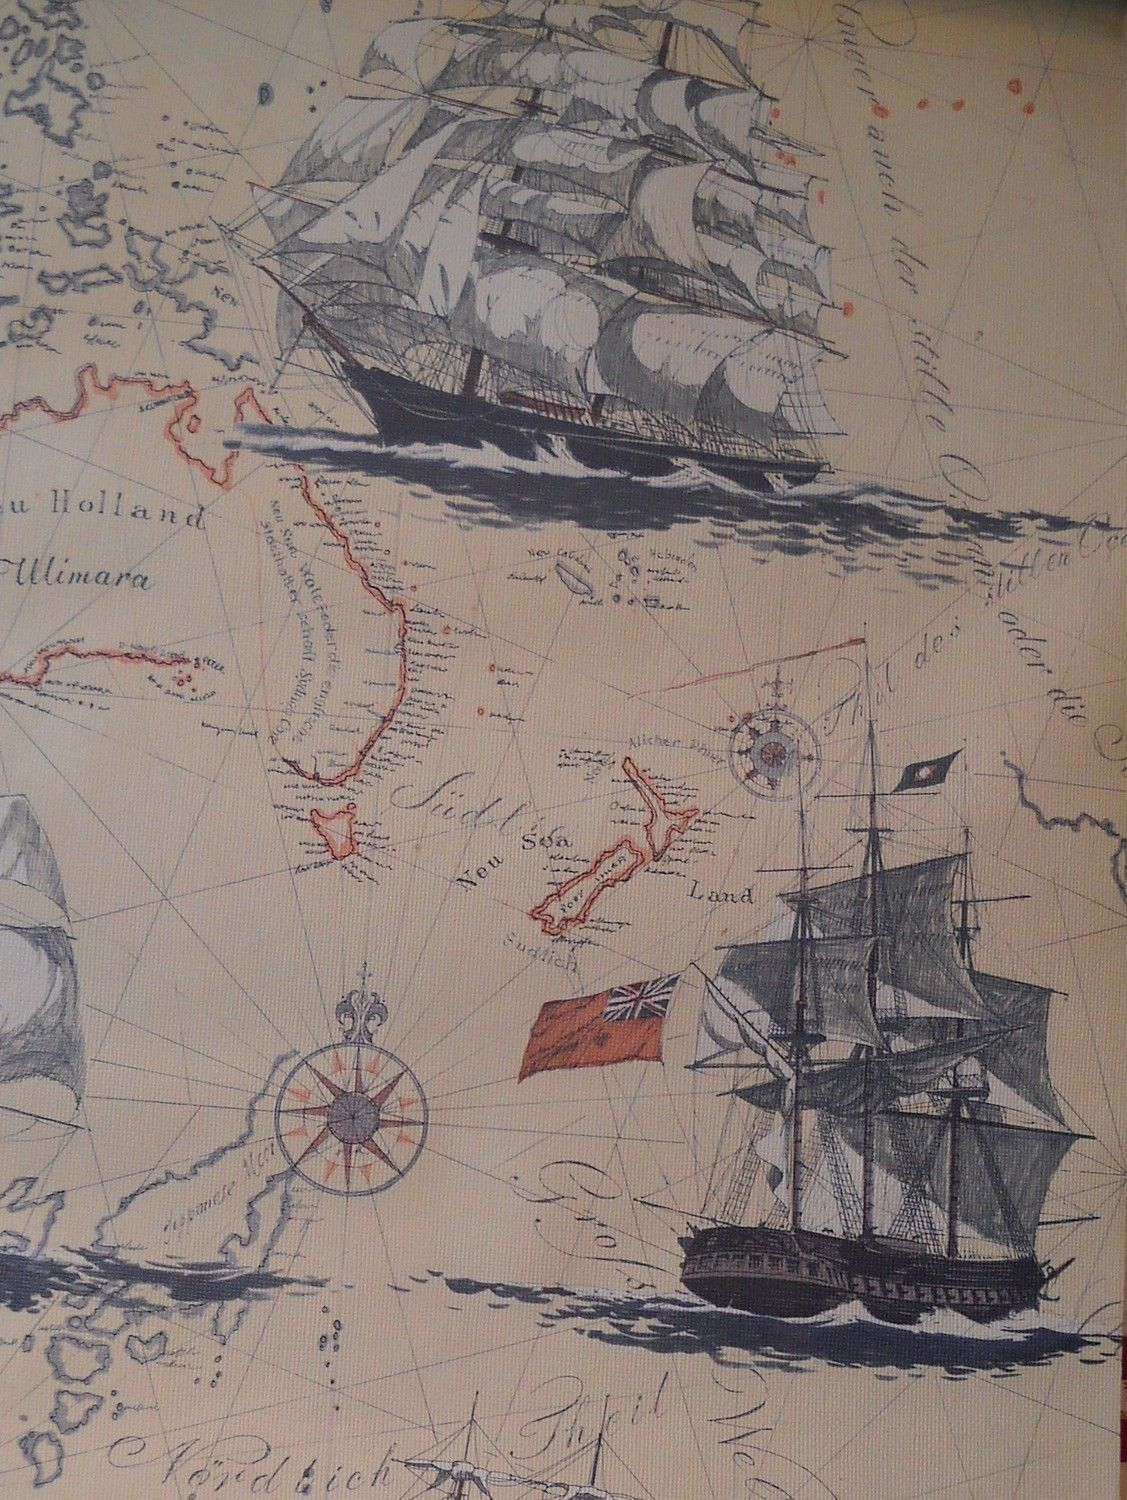 Pin By Brooke Anderson On Home Decor Nautical Wallpaper Map Wallpaper Nautical Map